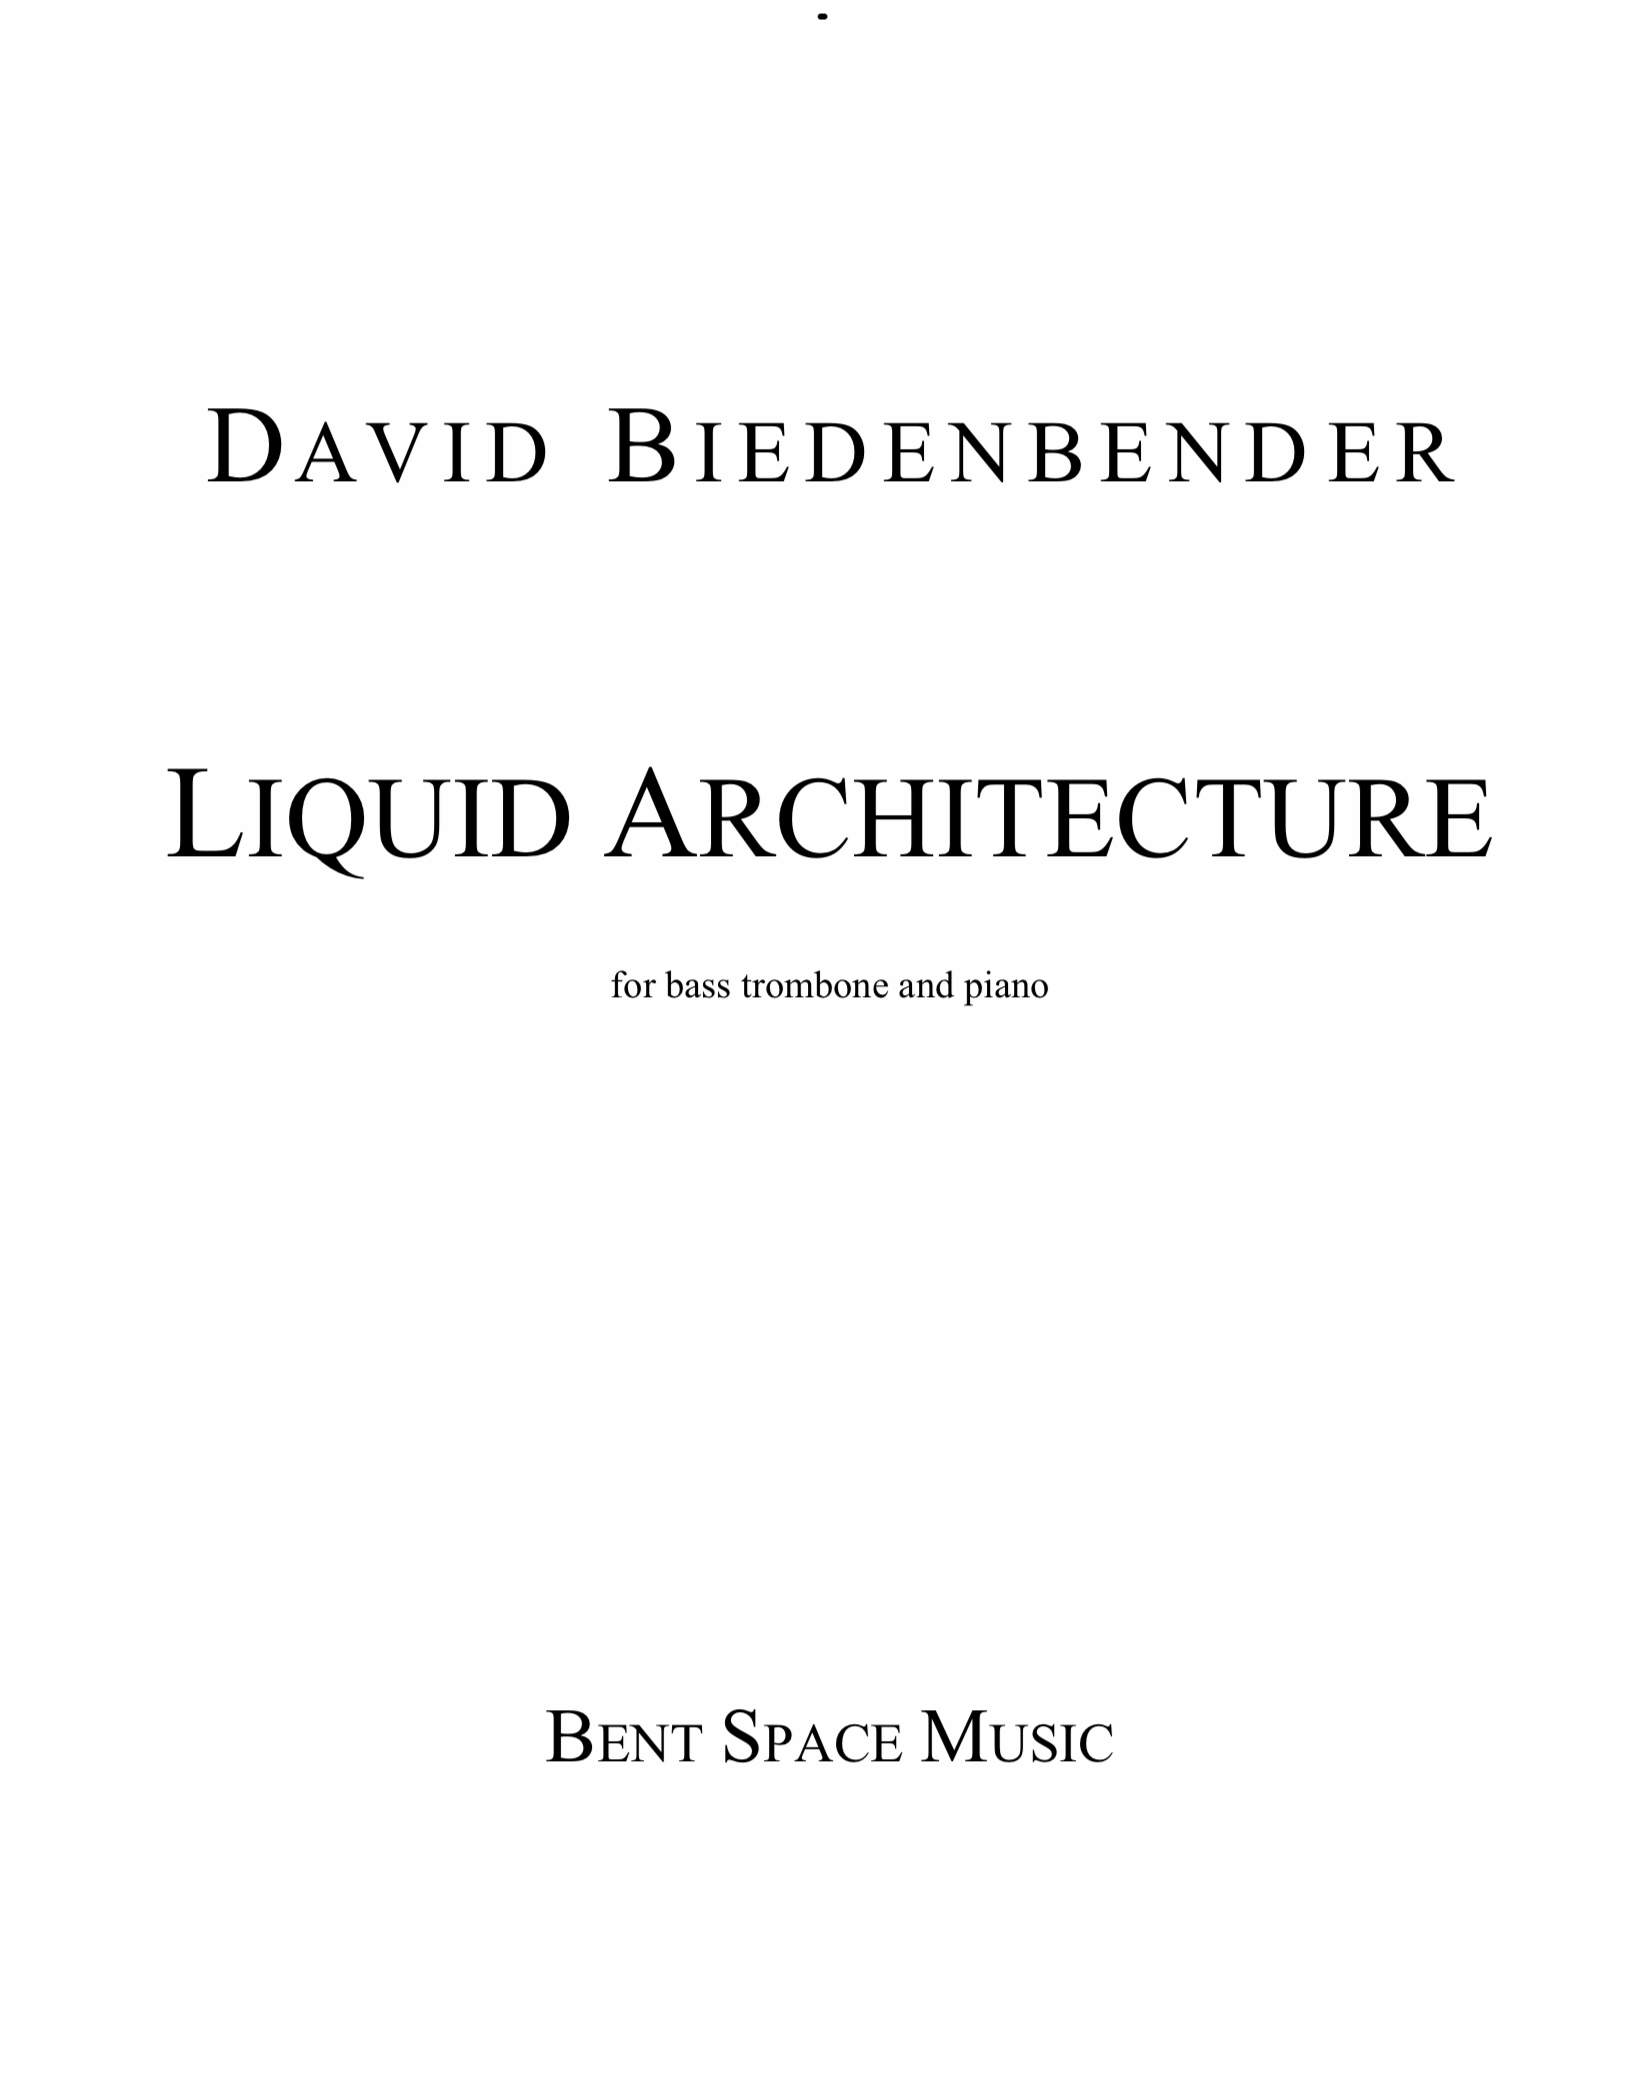 Liquid Architecture by David Biedenbender